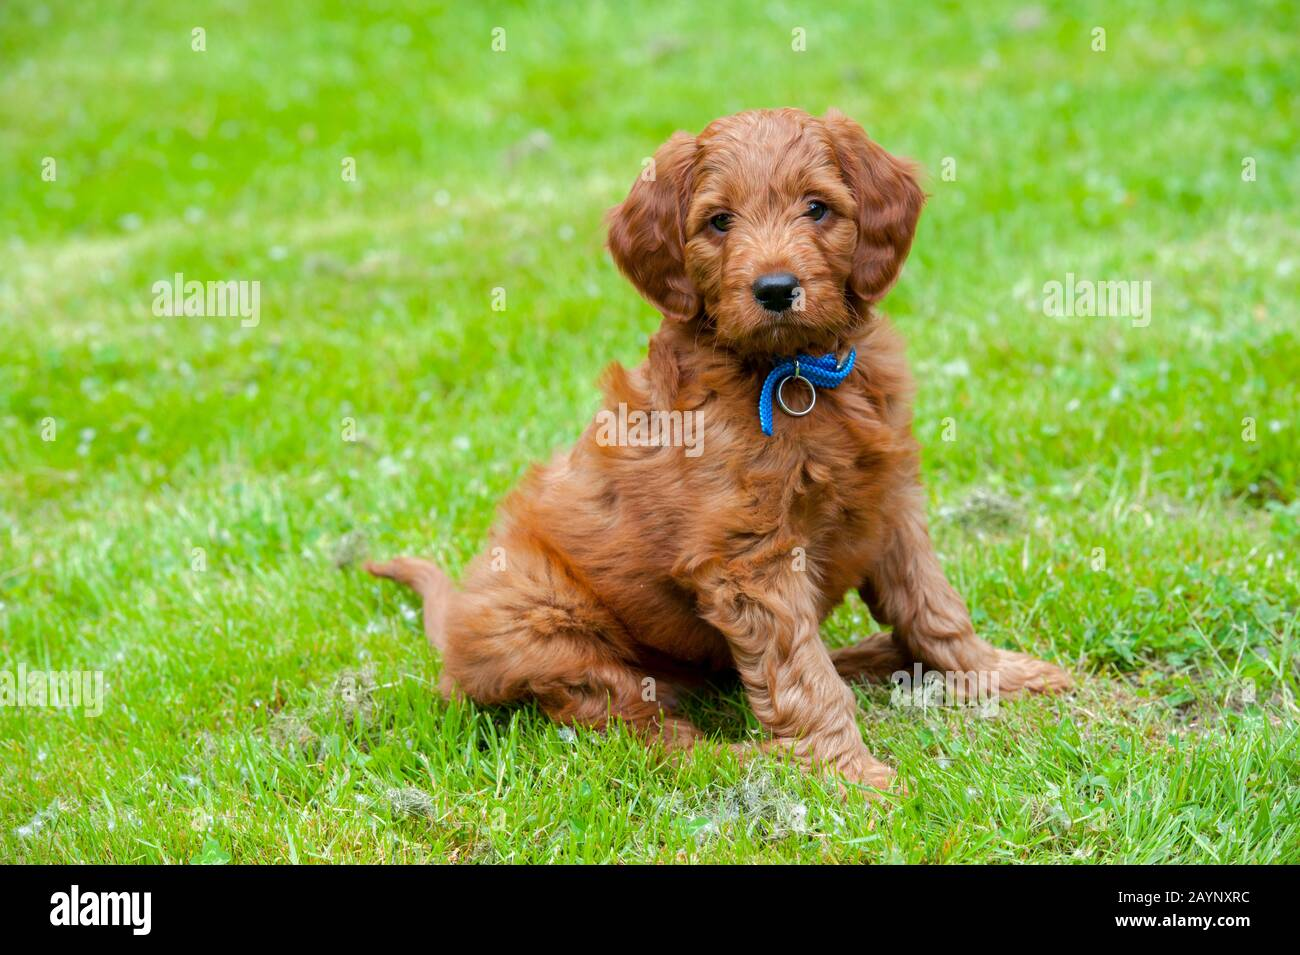 8 Week Old Goldendoodle Male Puppy Stock Photo Alamy